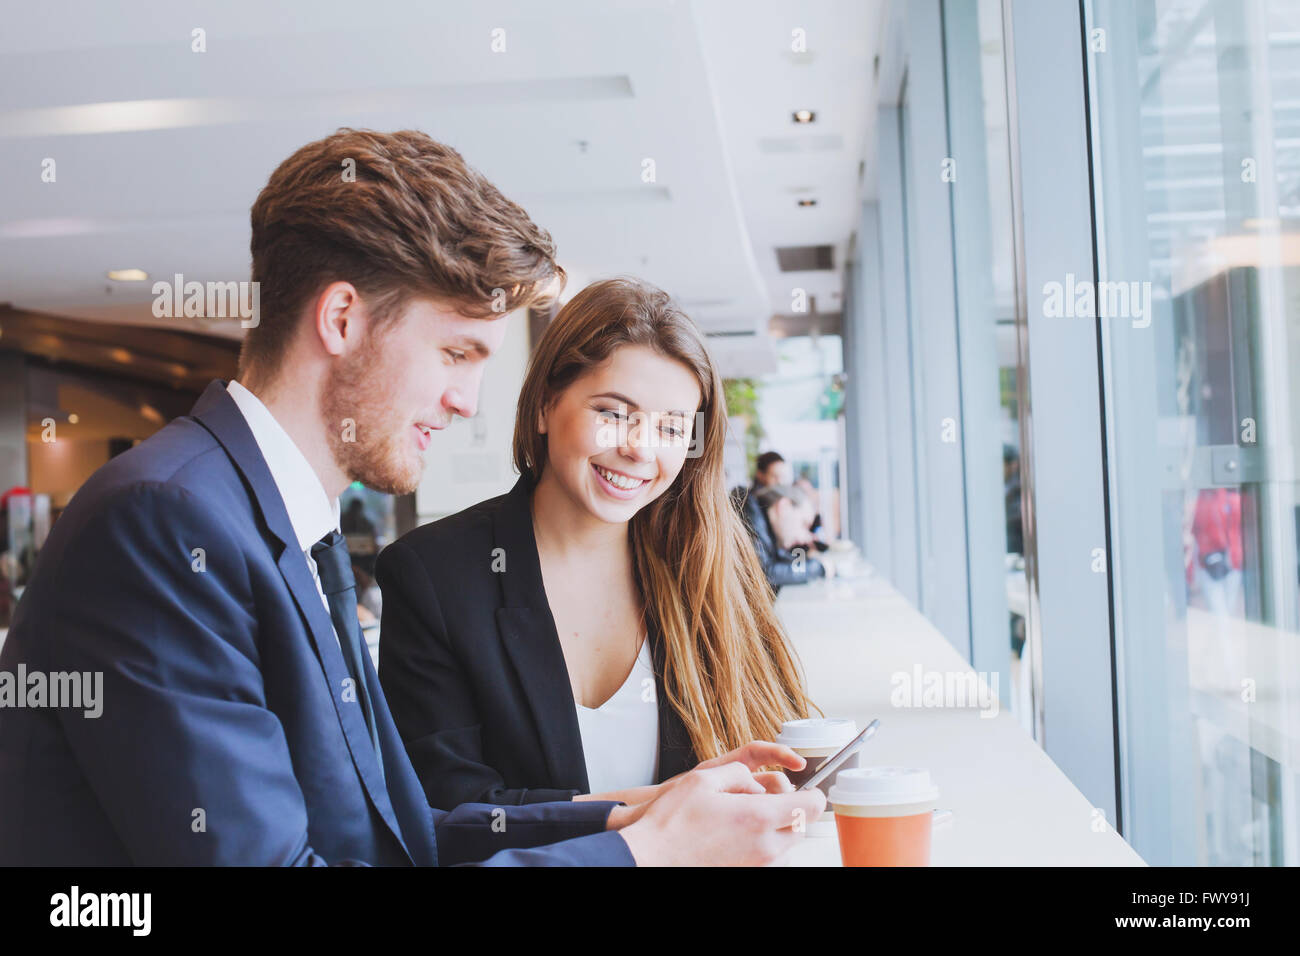 business people chatting in cafe at lunch or coffee break - Stock Image